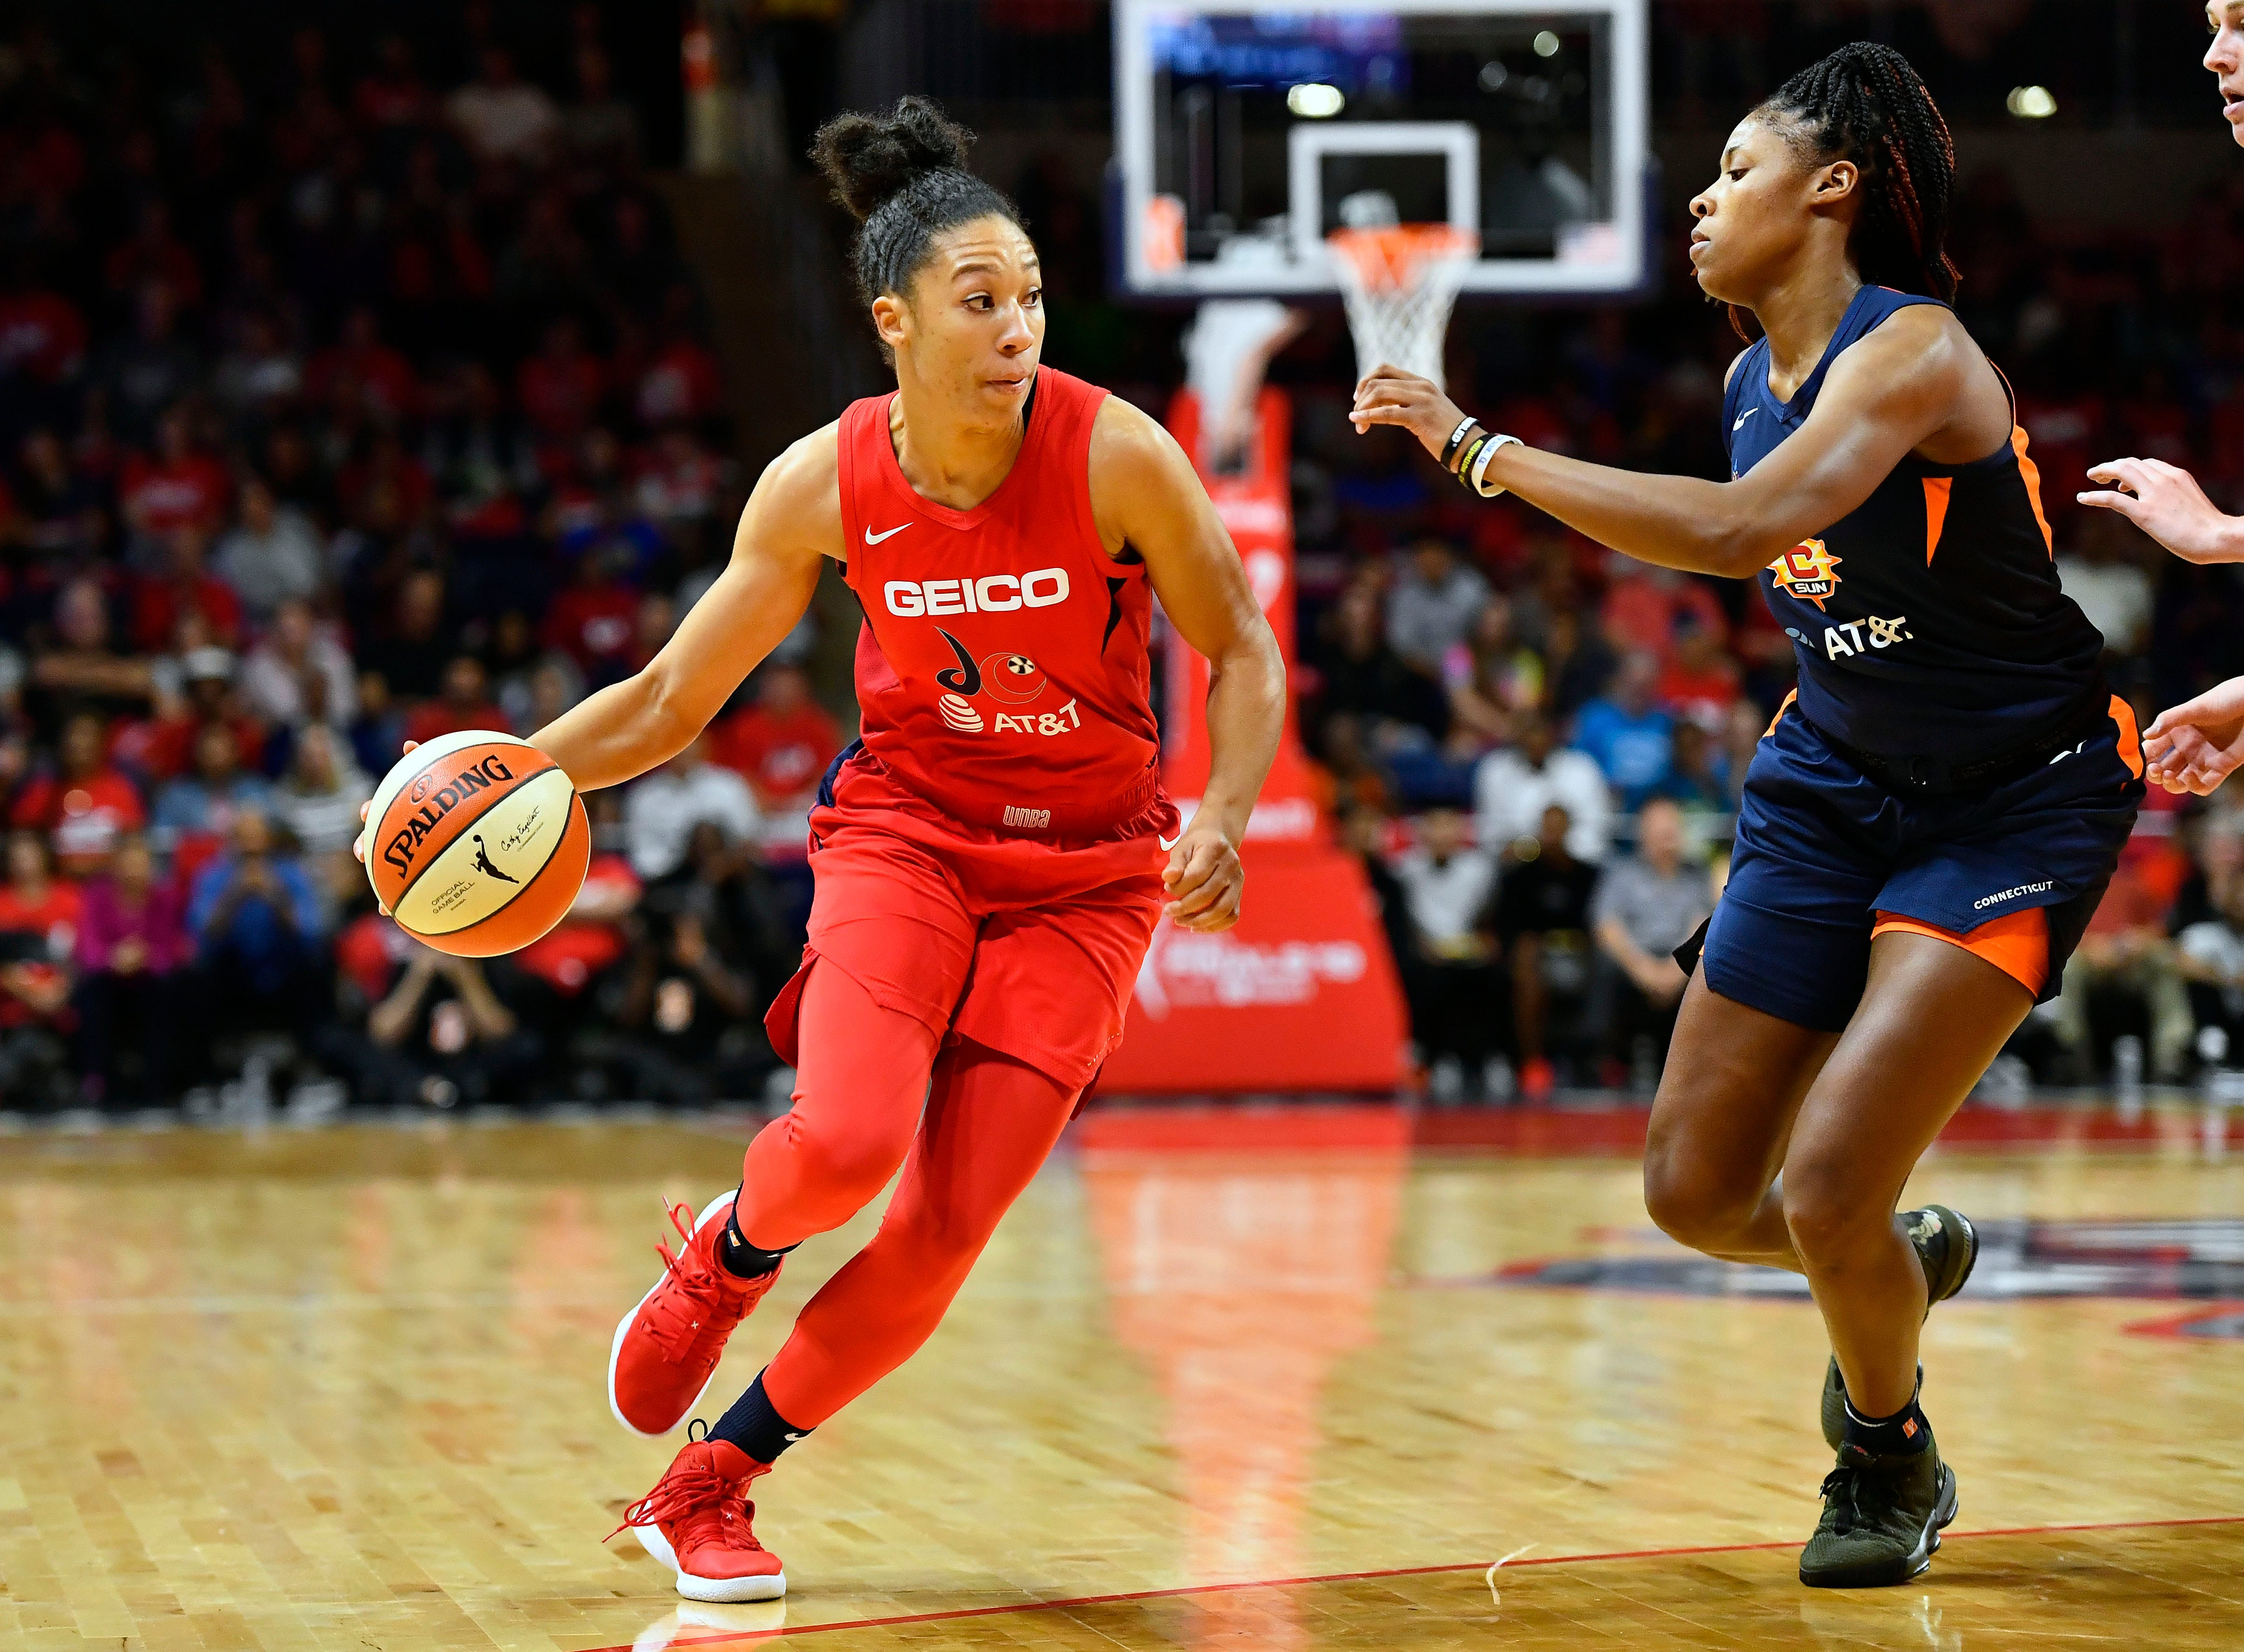 WNBA players: New NBA 2K21 features for women's game 'just surreal'